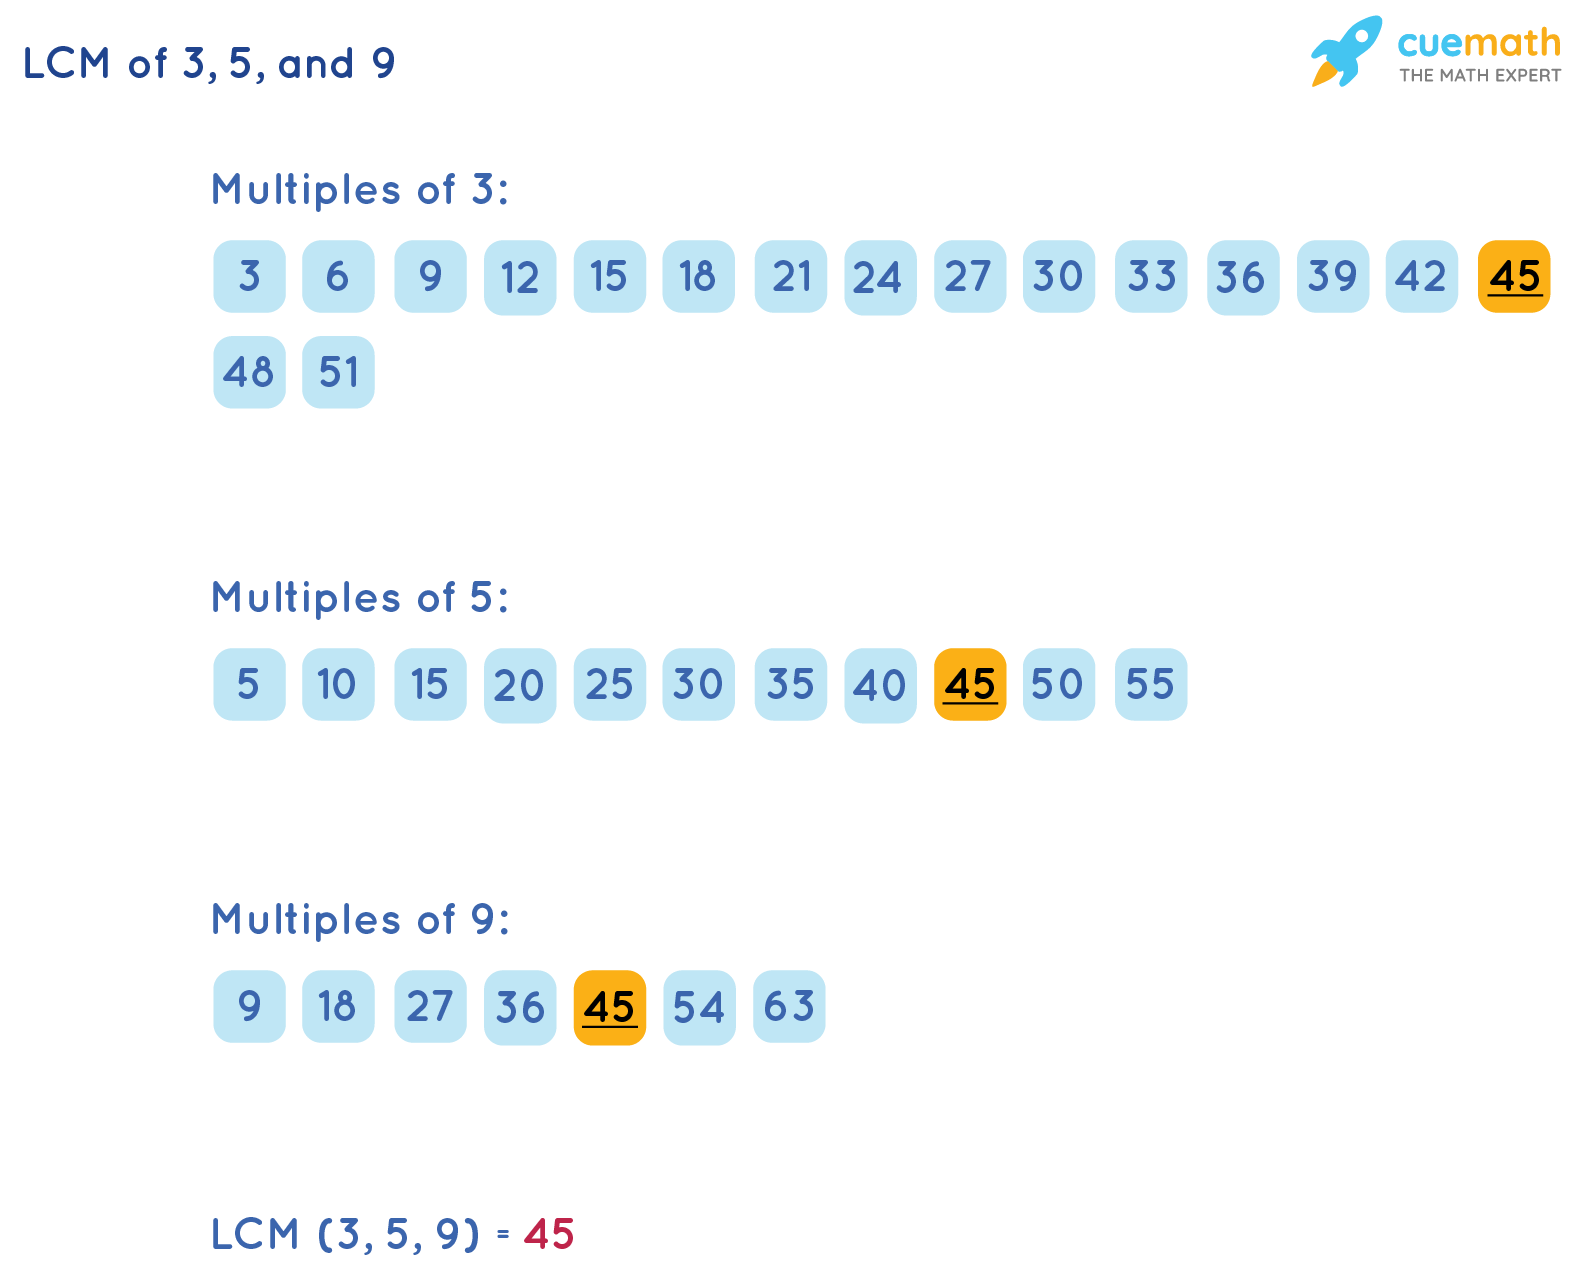 LCM of 3, 5, and 9 by Listing Method